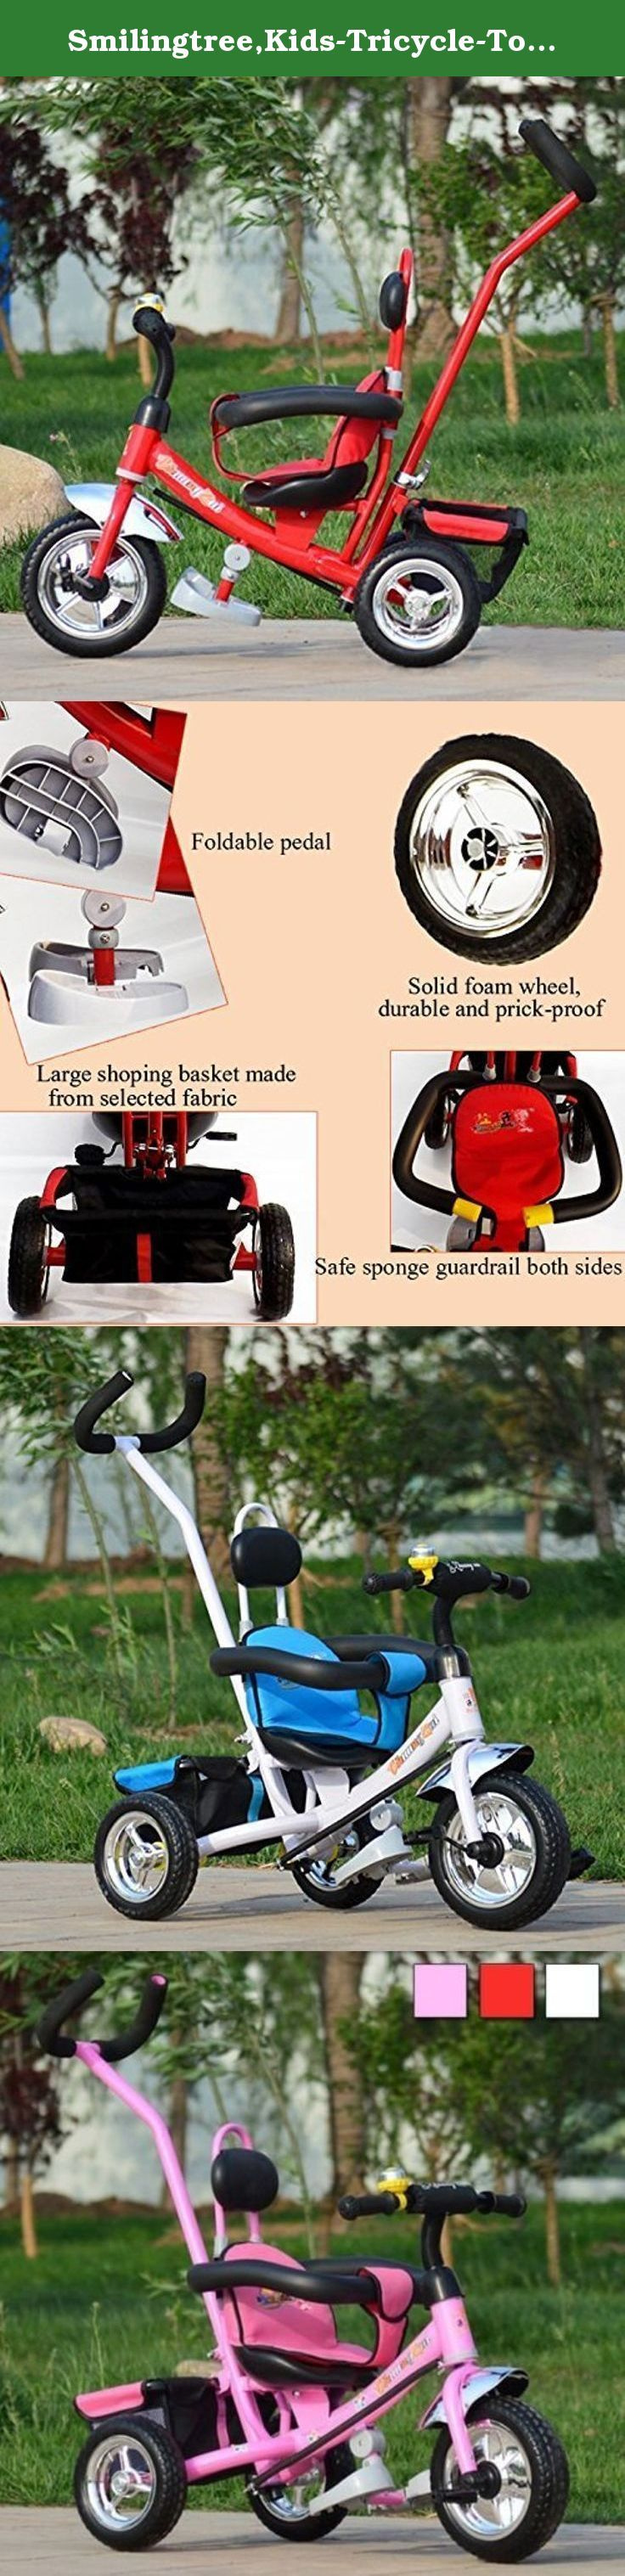 Smilingtree,Kids-Tricycle-Toddler-Bike-Stroller-Tricycle-Pram-Push-Ride-Pushchair,baby stroller (Red). Kids-Tricycle-Toddler-Bike-Stroller-Tricycle-Pram-Push-Ride-Pushchair,baby stroller Color:As picture shown Material:Steel frame Suitable age:1-6 years Size:length*width:82*56, height:100-110cm, seat to foot pedal height:22cm (Unit:CM) Size Conversion:1 inch=2.54cm or 1cm=0.393inch (Please allow 1-3 cm error due to manual measurement.) Max load bearing:50kg Features: 1.Easily folded foot...